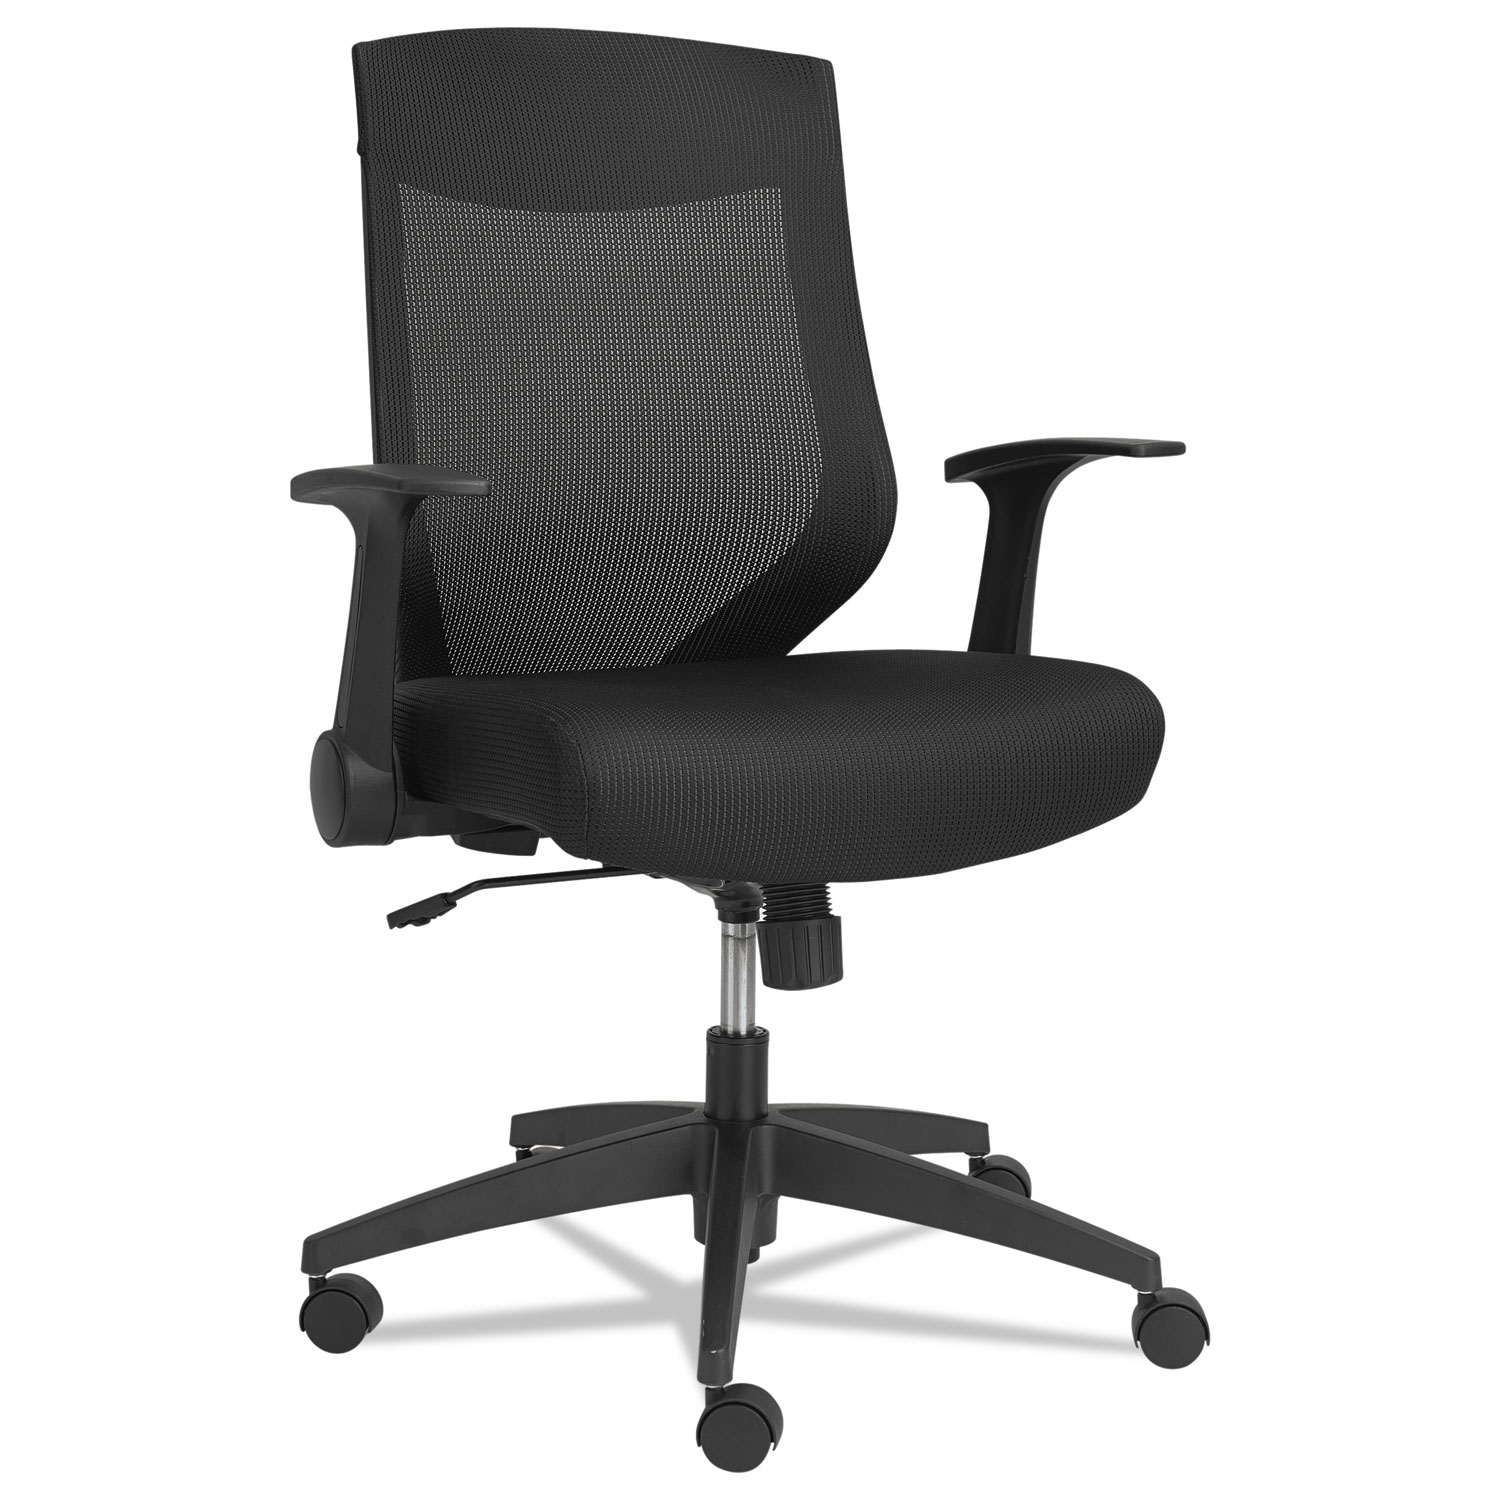 Alera Chair Alera Eb K Series Synchro Mid Back Mesh Chair By Alera